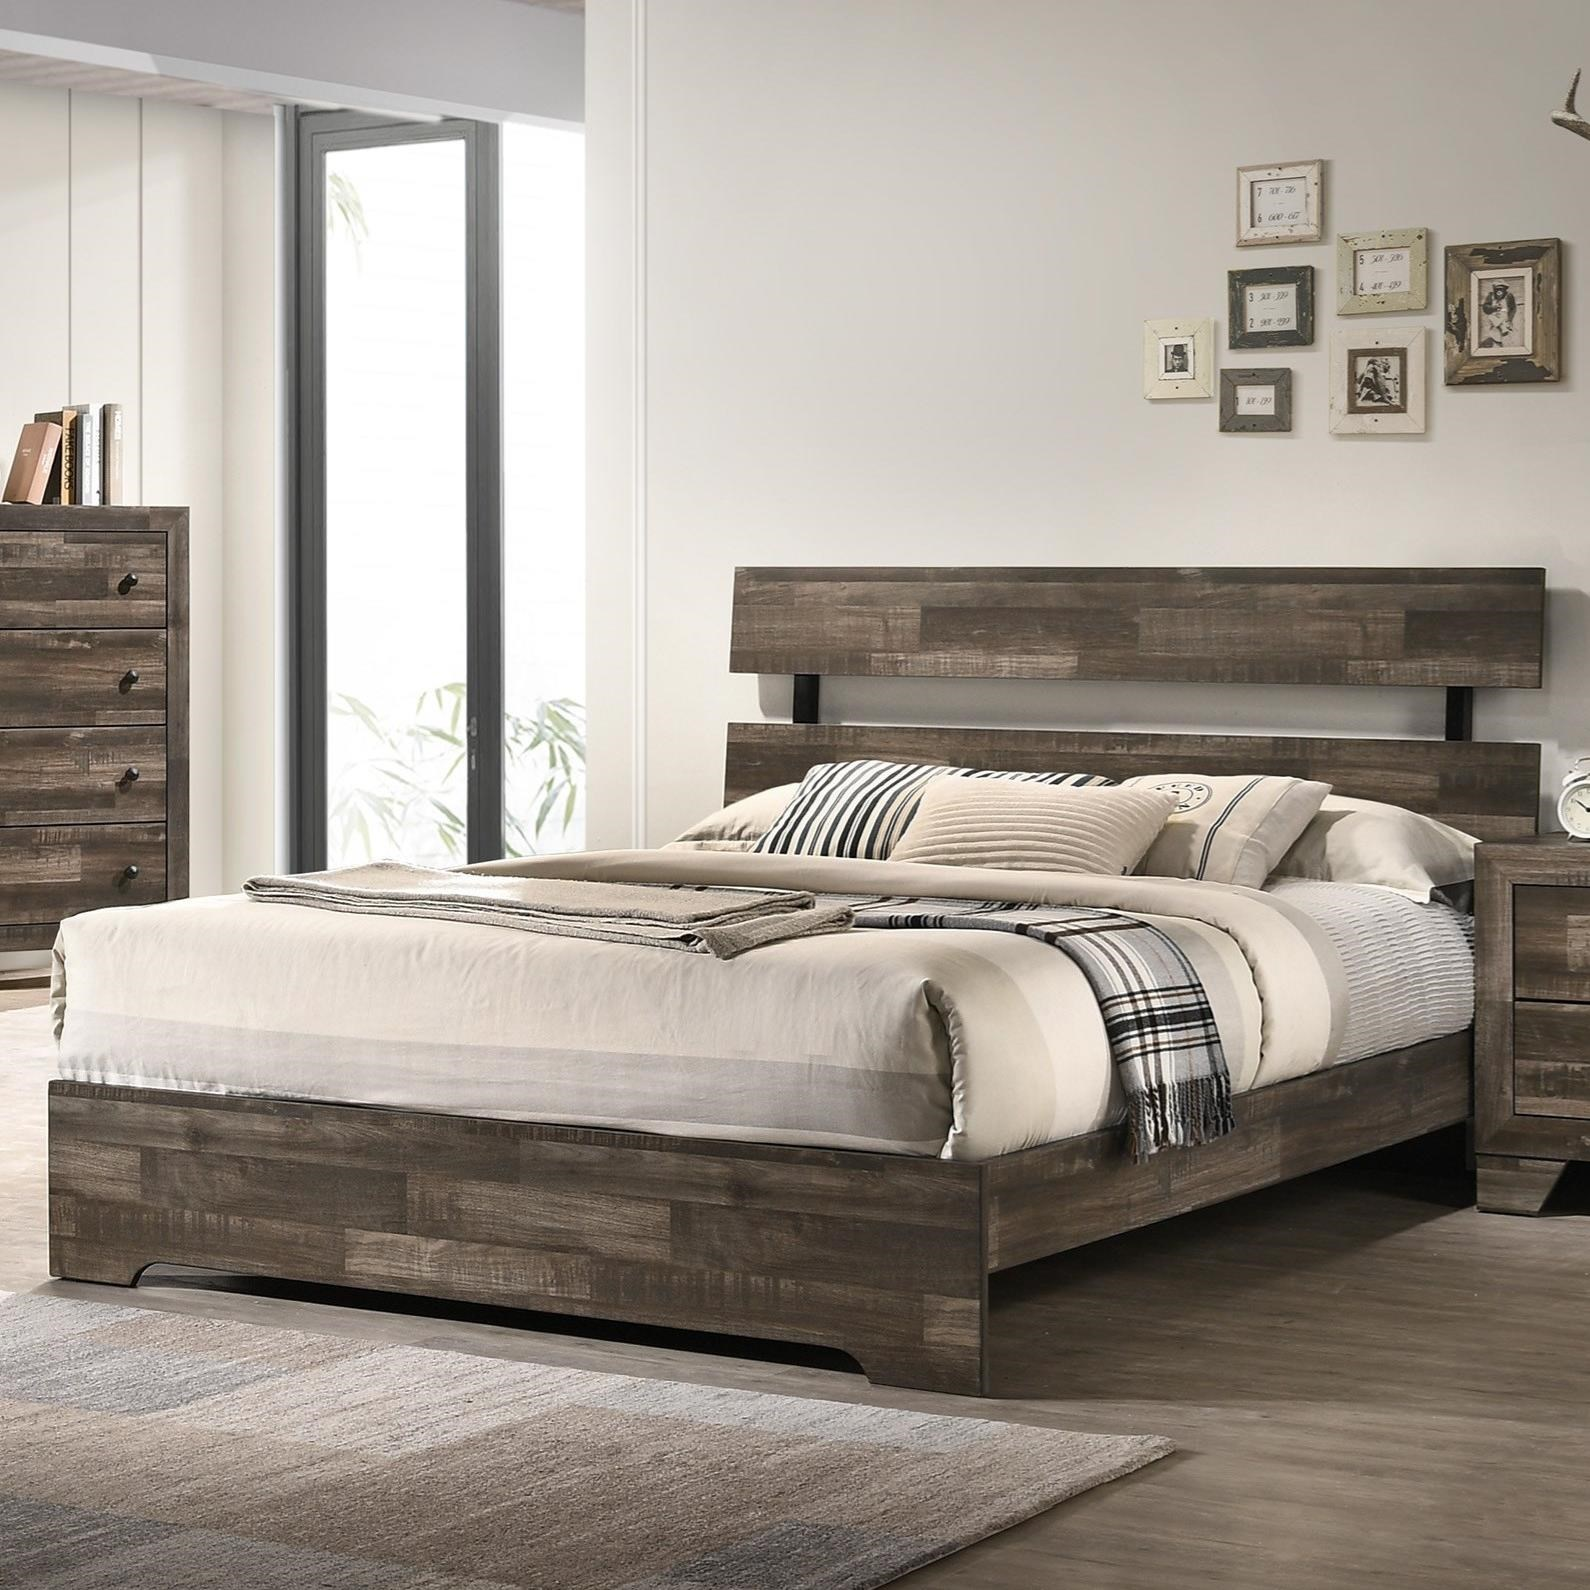 Crown Mark Atticus Rustic California King Bed | Royal Furniture | Platform Beds/Low Profile Beds